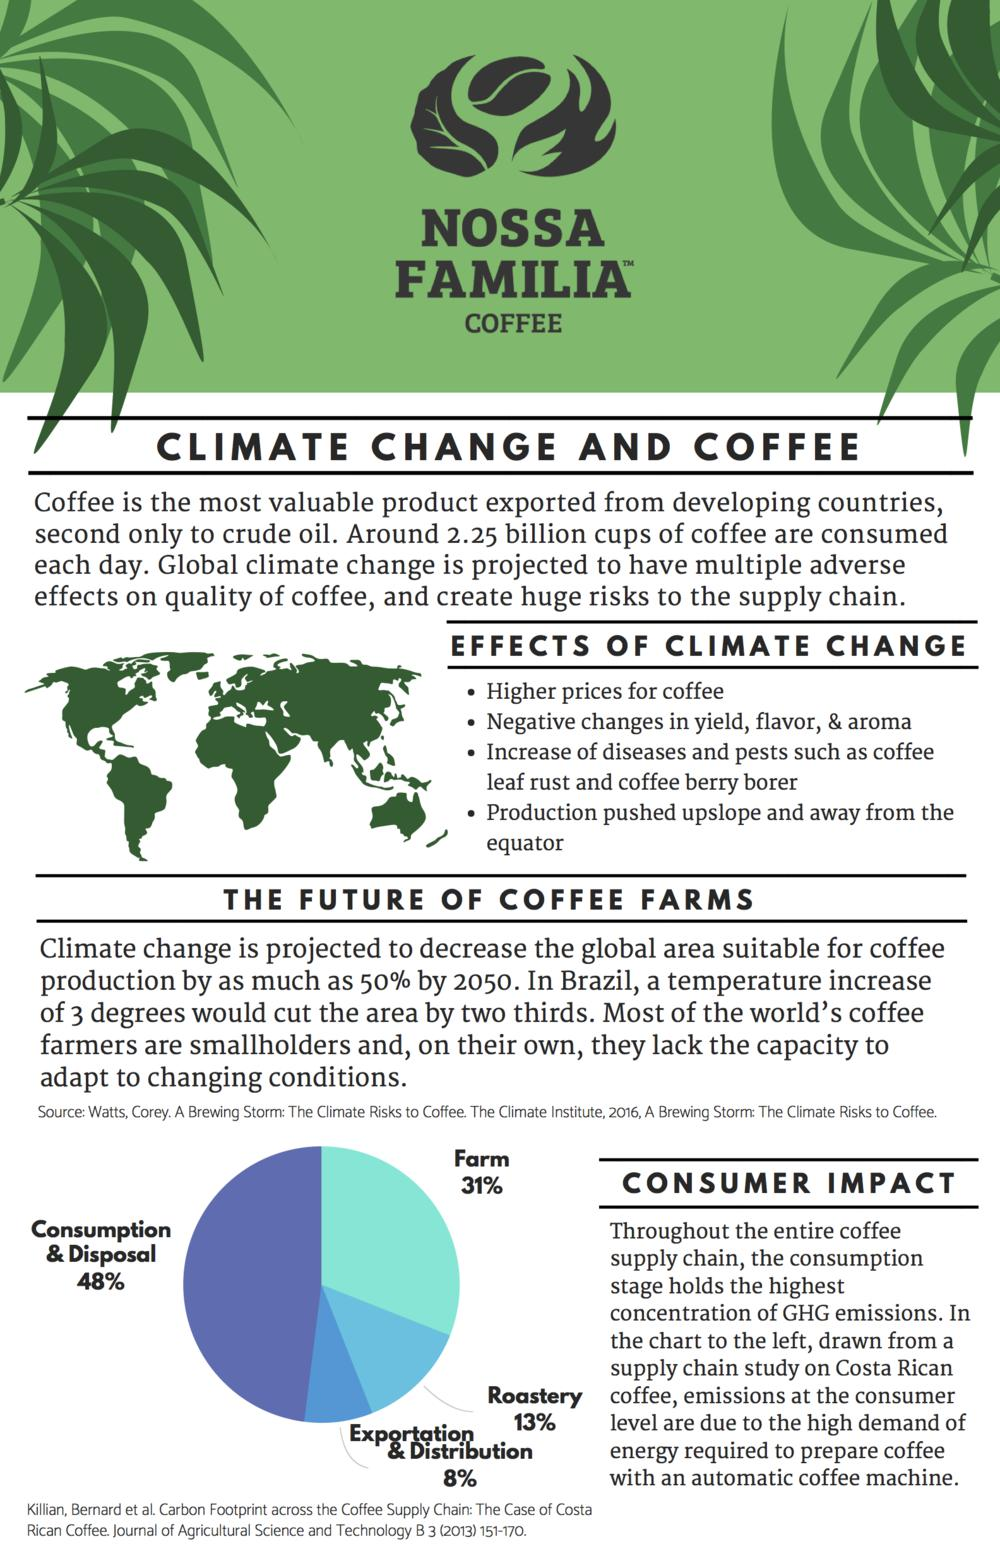 Resources on Sustainability in Coffee